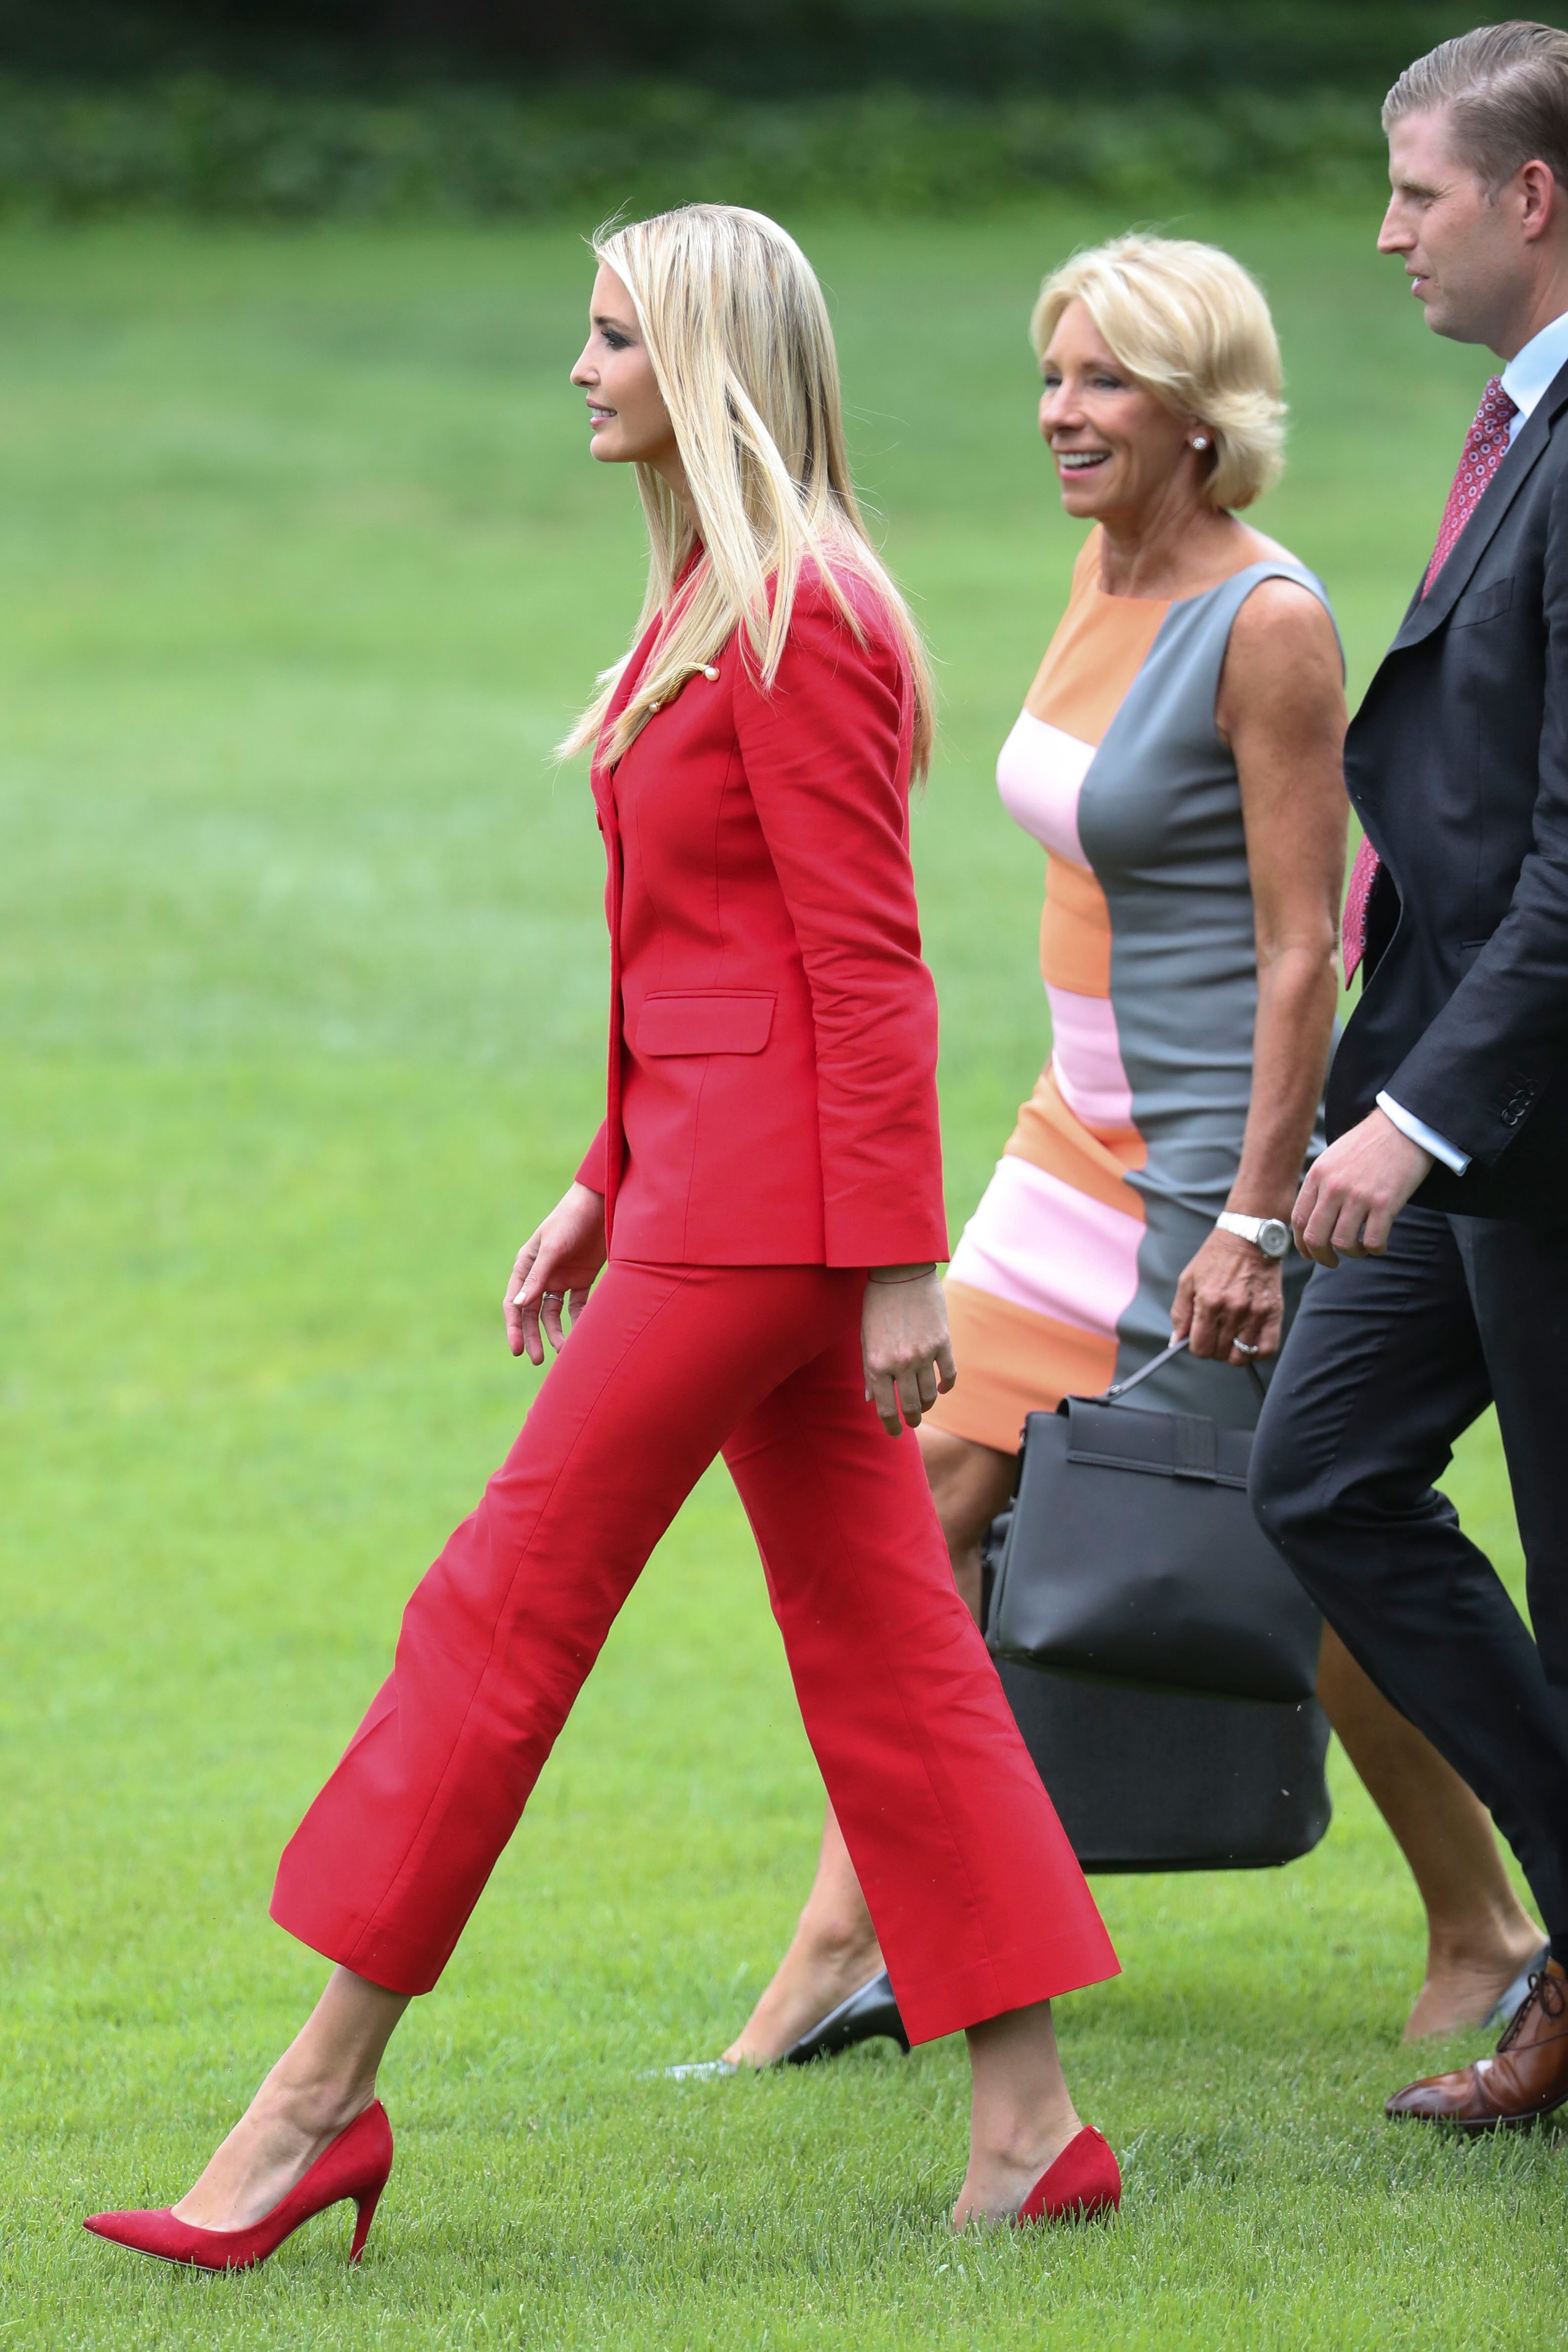 sandro red suit, Ivanka Trump (L), US Secretary of Education Betsy DeVos (C) and Eric Trump (R) walk to board Marine One on the South Lawn of the White House in Washington, DC, USA, 31 July 2018. Today jury selection begins for Paul Manafort's trial in Alexandria federal court on bank and tax fraud charges discovered during the special counsel's investigation of Russian meddling in the 2016 presidential election.US President Donald J. Trump departs the White House for an evening trip to Tampa, Florida, Washington, USA - 31 Jul 2018WEARING SANDRO